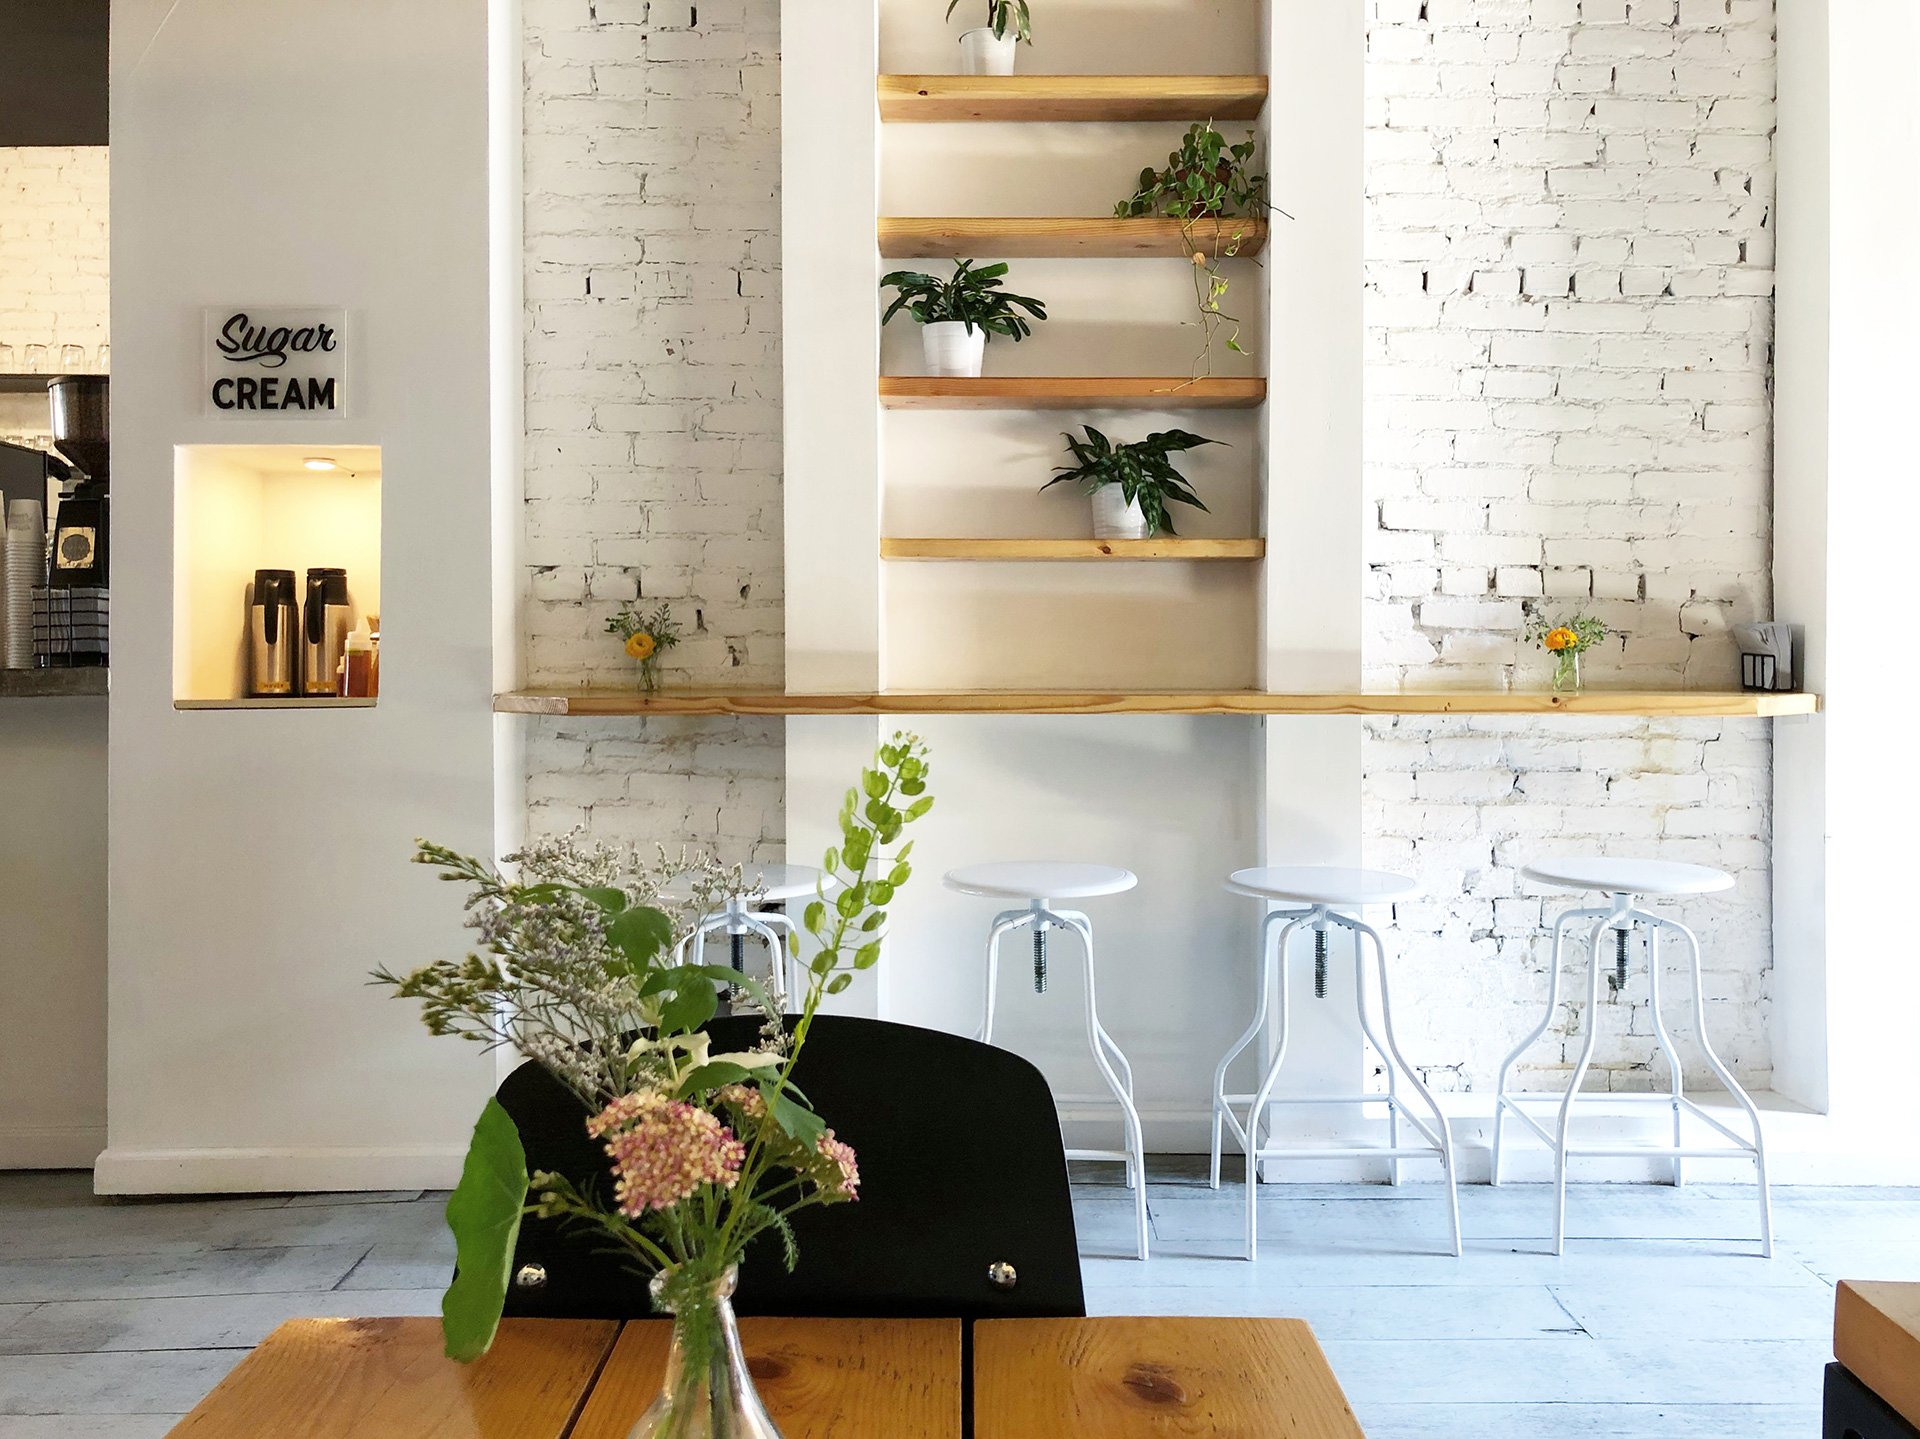 Superior Merchandise Company: A Design-minded Incubator & Cafe In Upstate New York photo